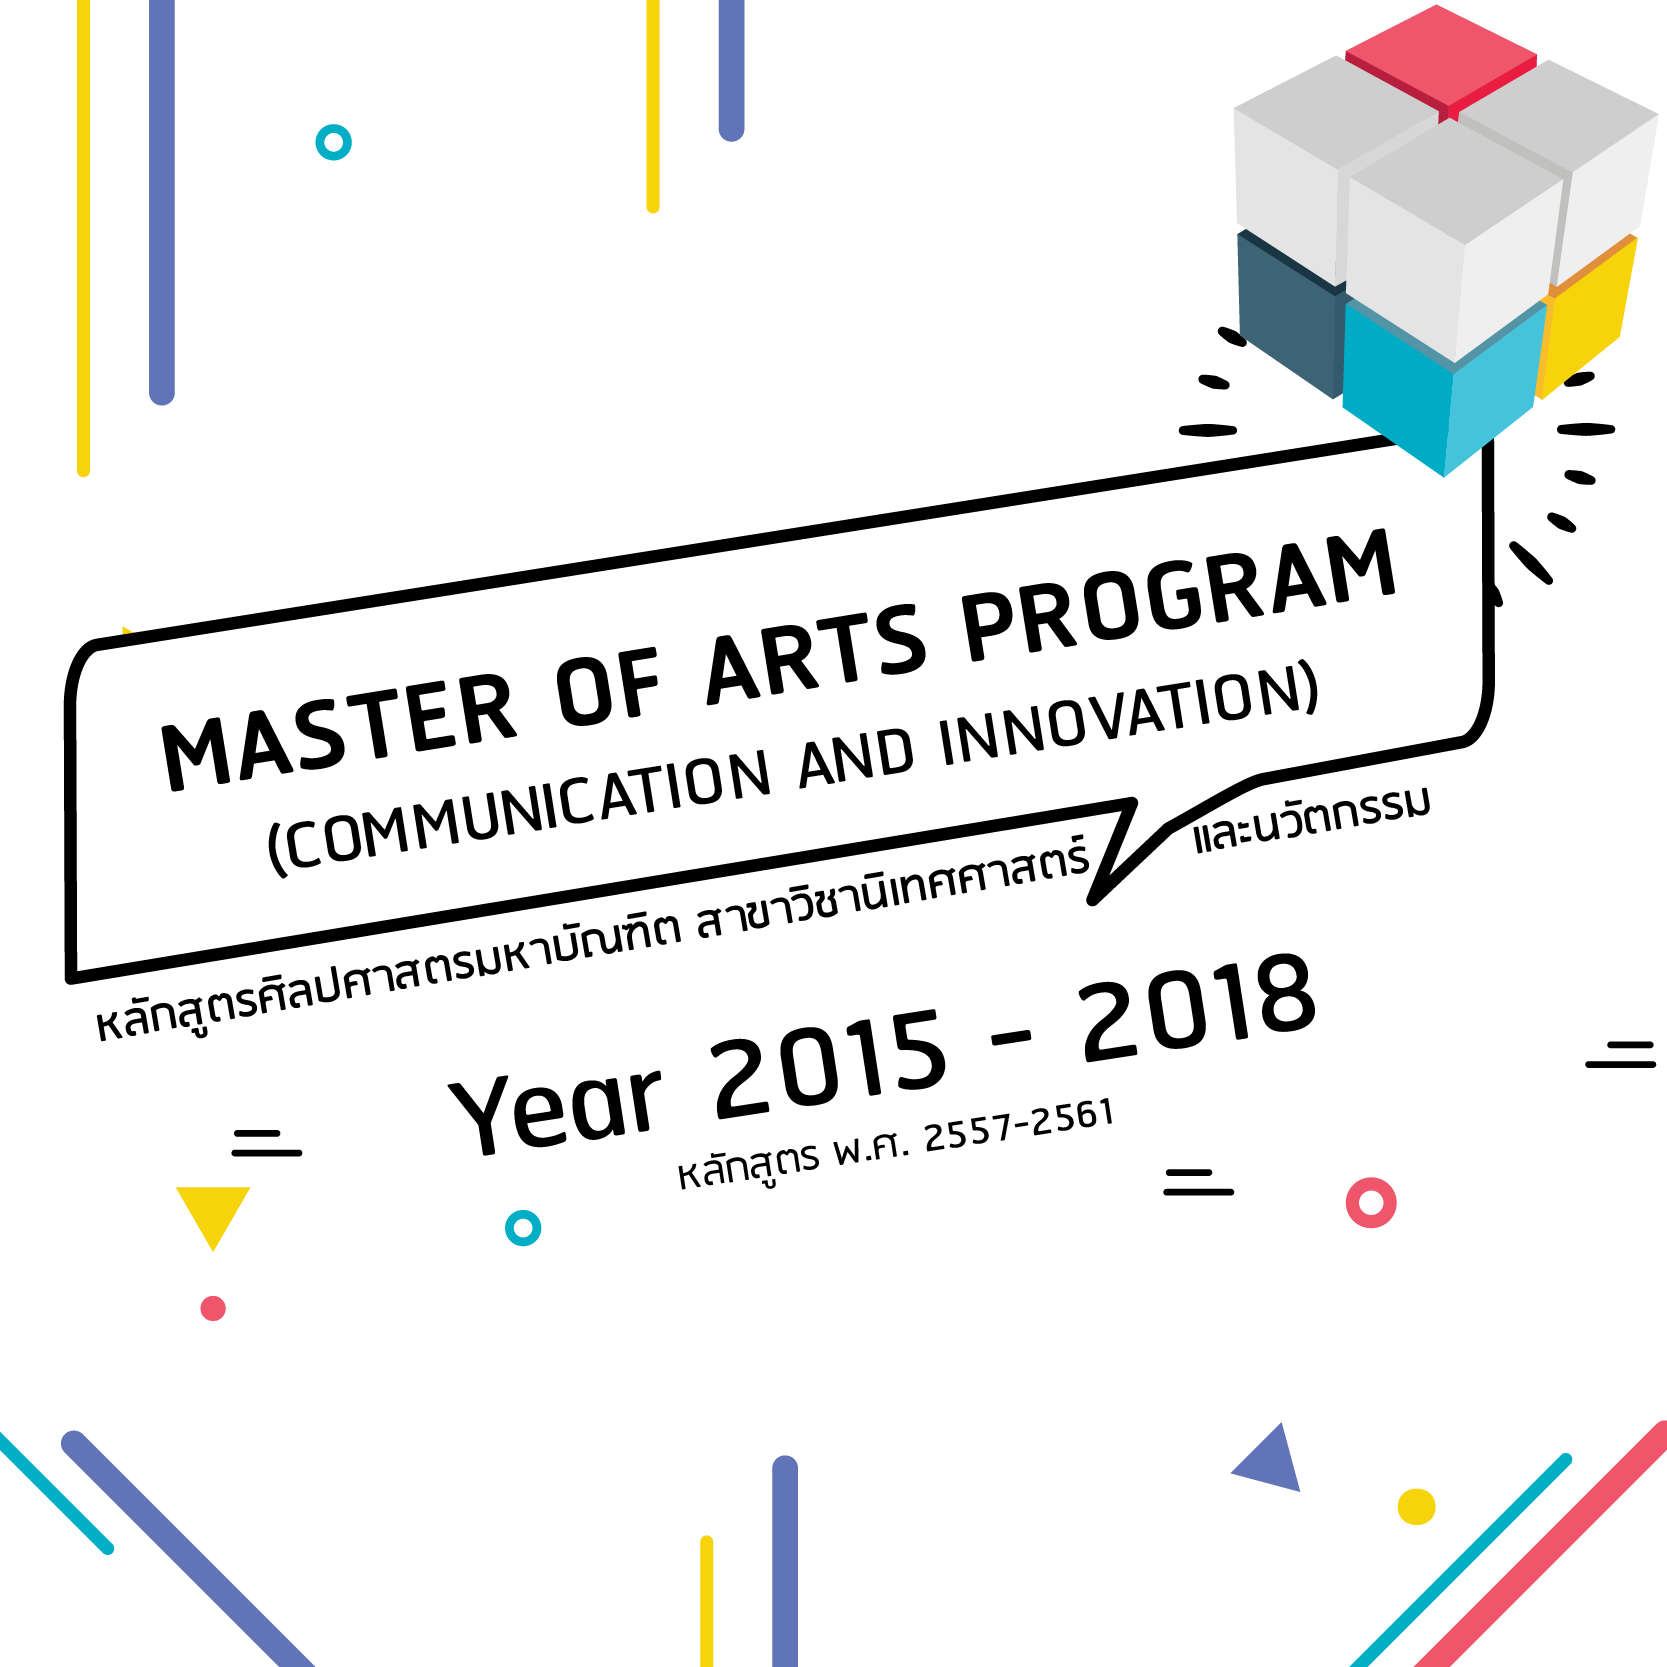 Master of Arts (Communication and Innovation) 2015